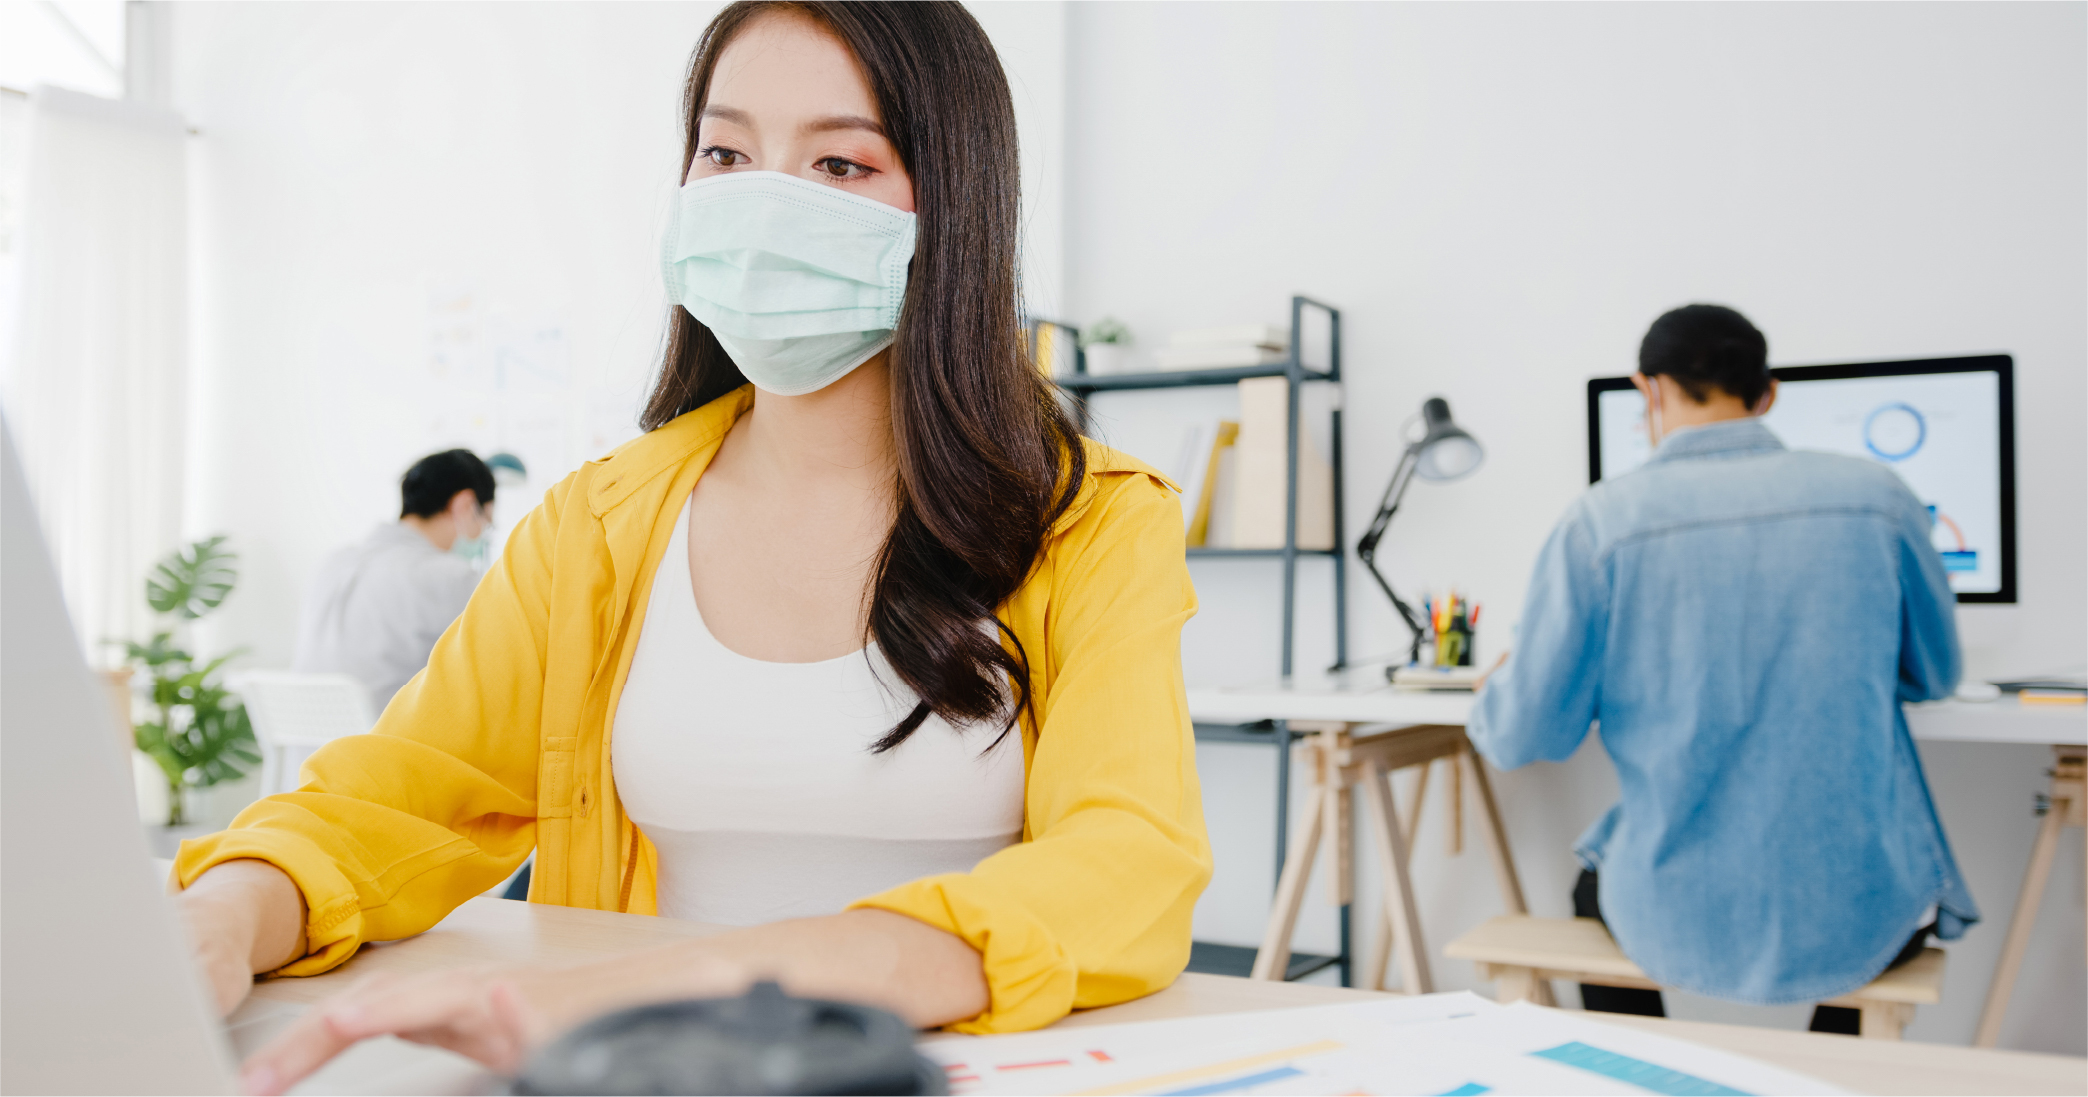 5 Benefits of Having a Private Office Space During the Pandemic